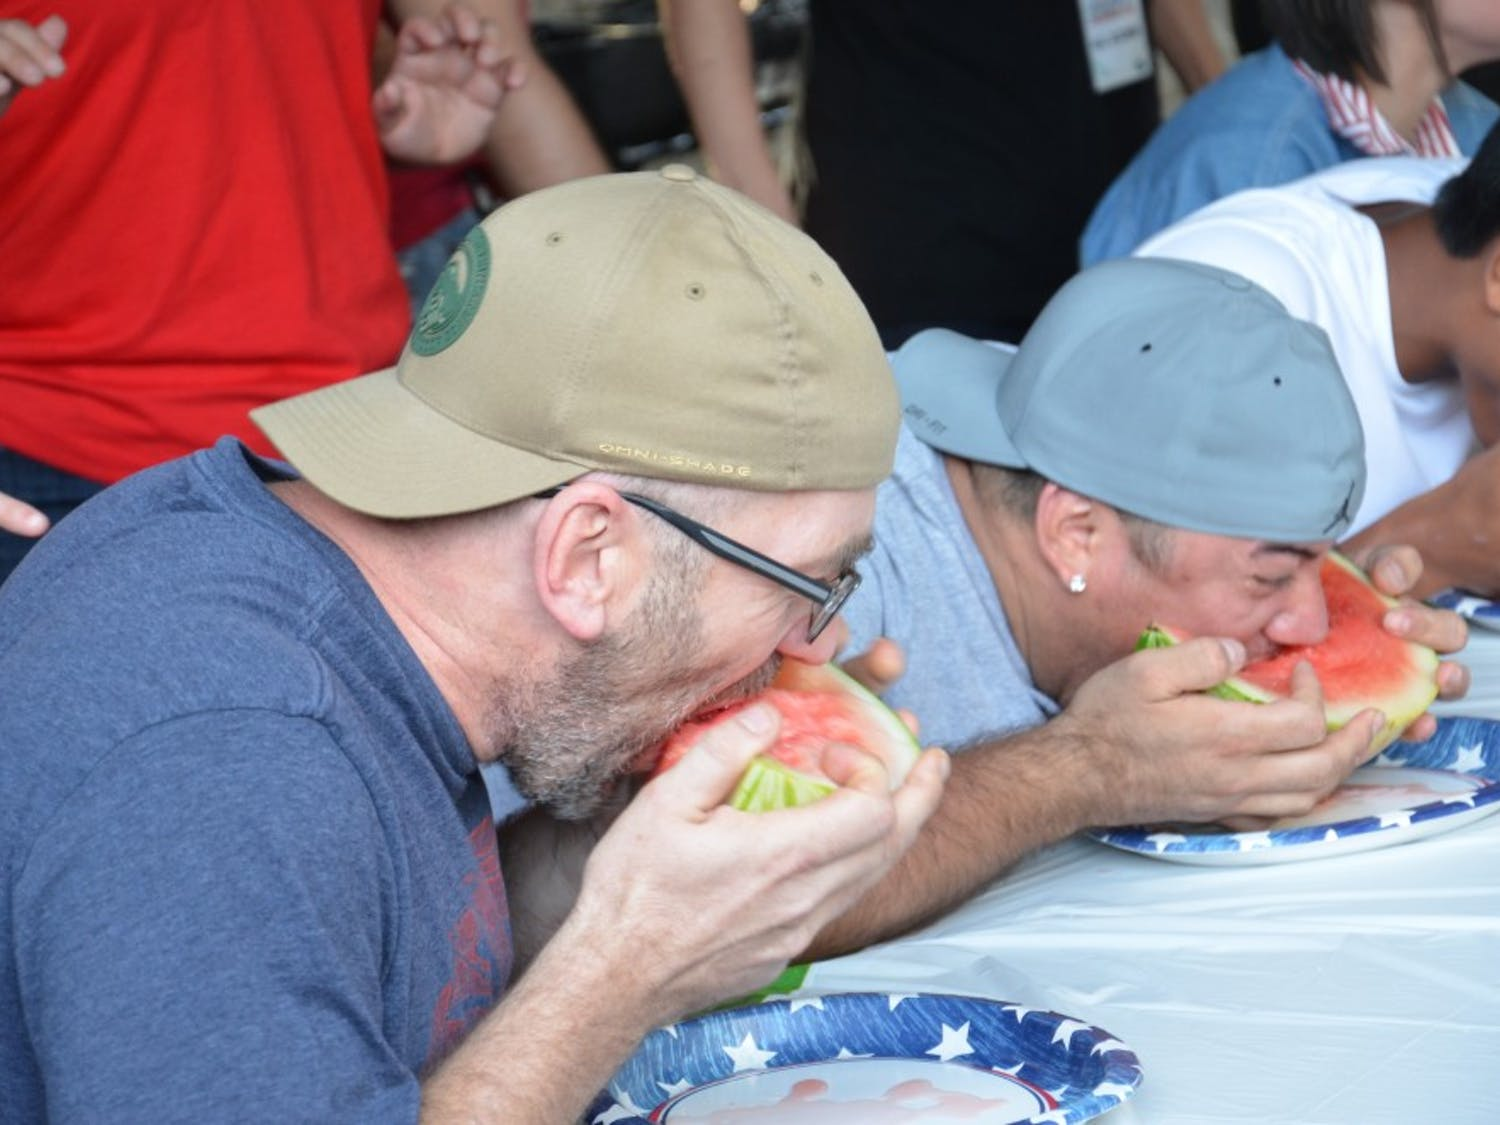 Chapel Hill resident Richard Crump competes in the 2017 DSI Watermelon Eating Contest.